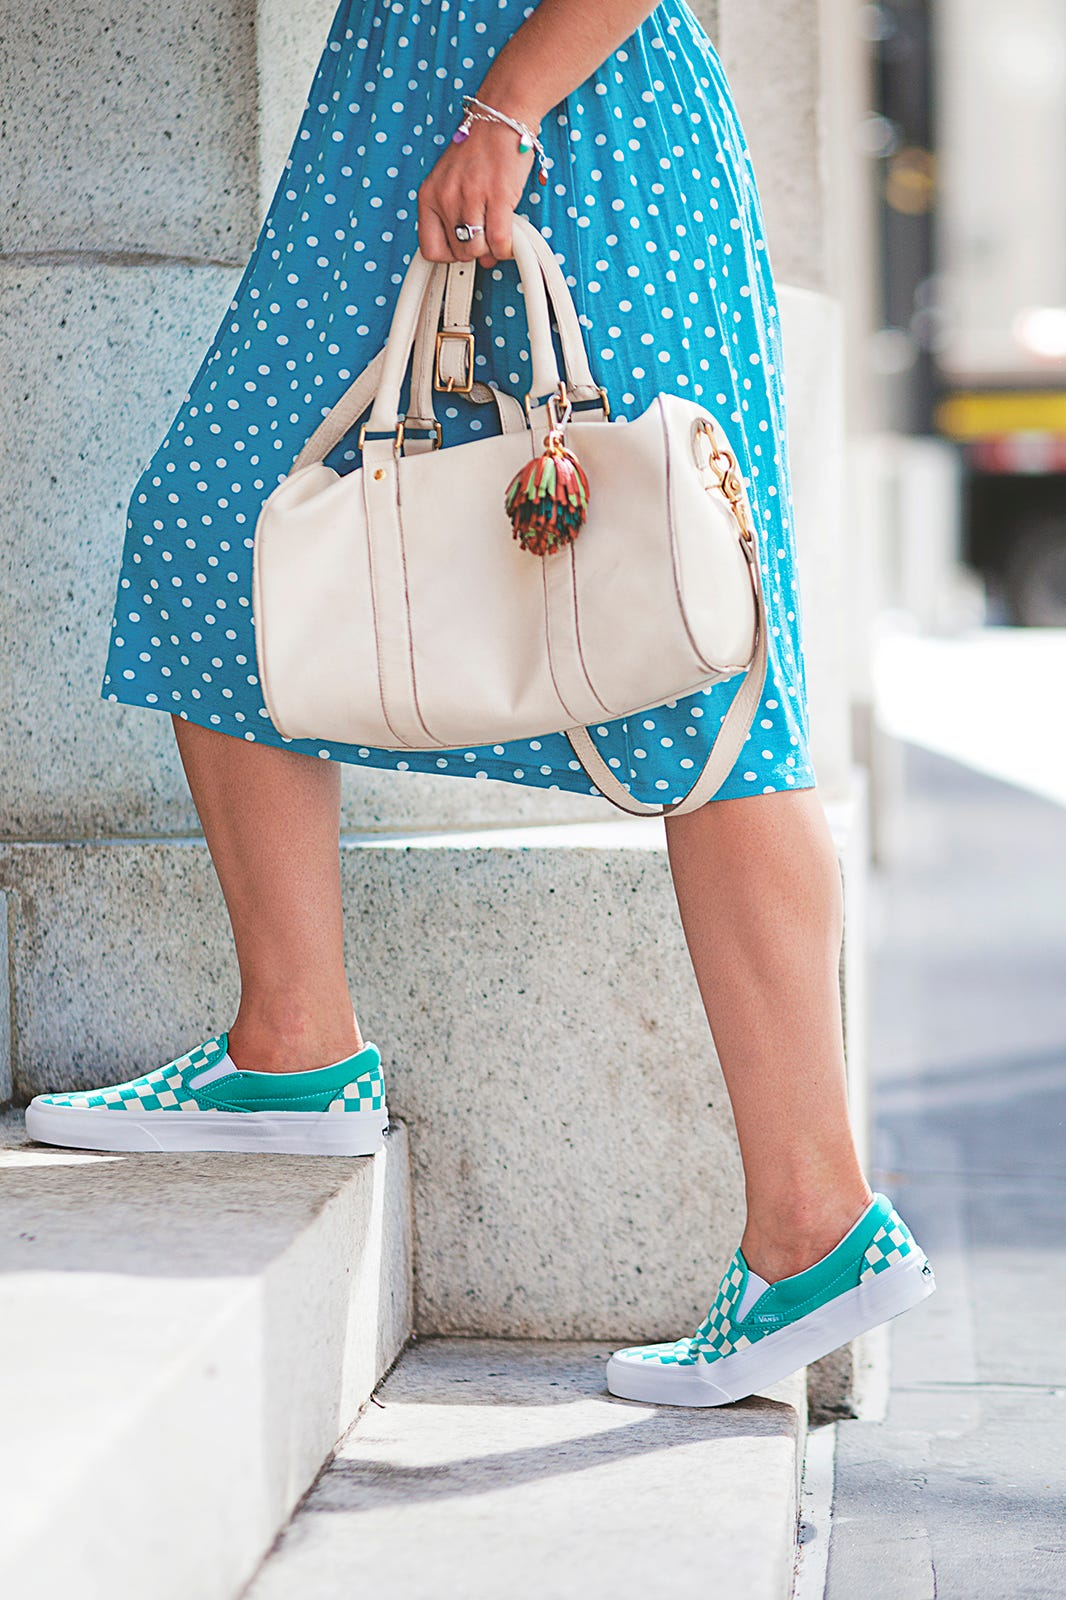 2019 year style- How to teal wear vans